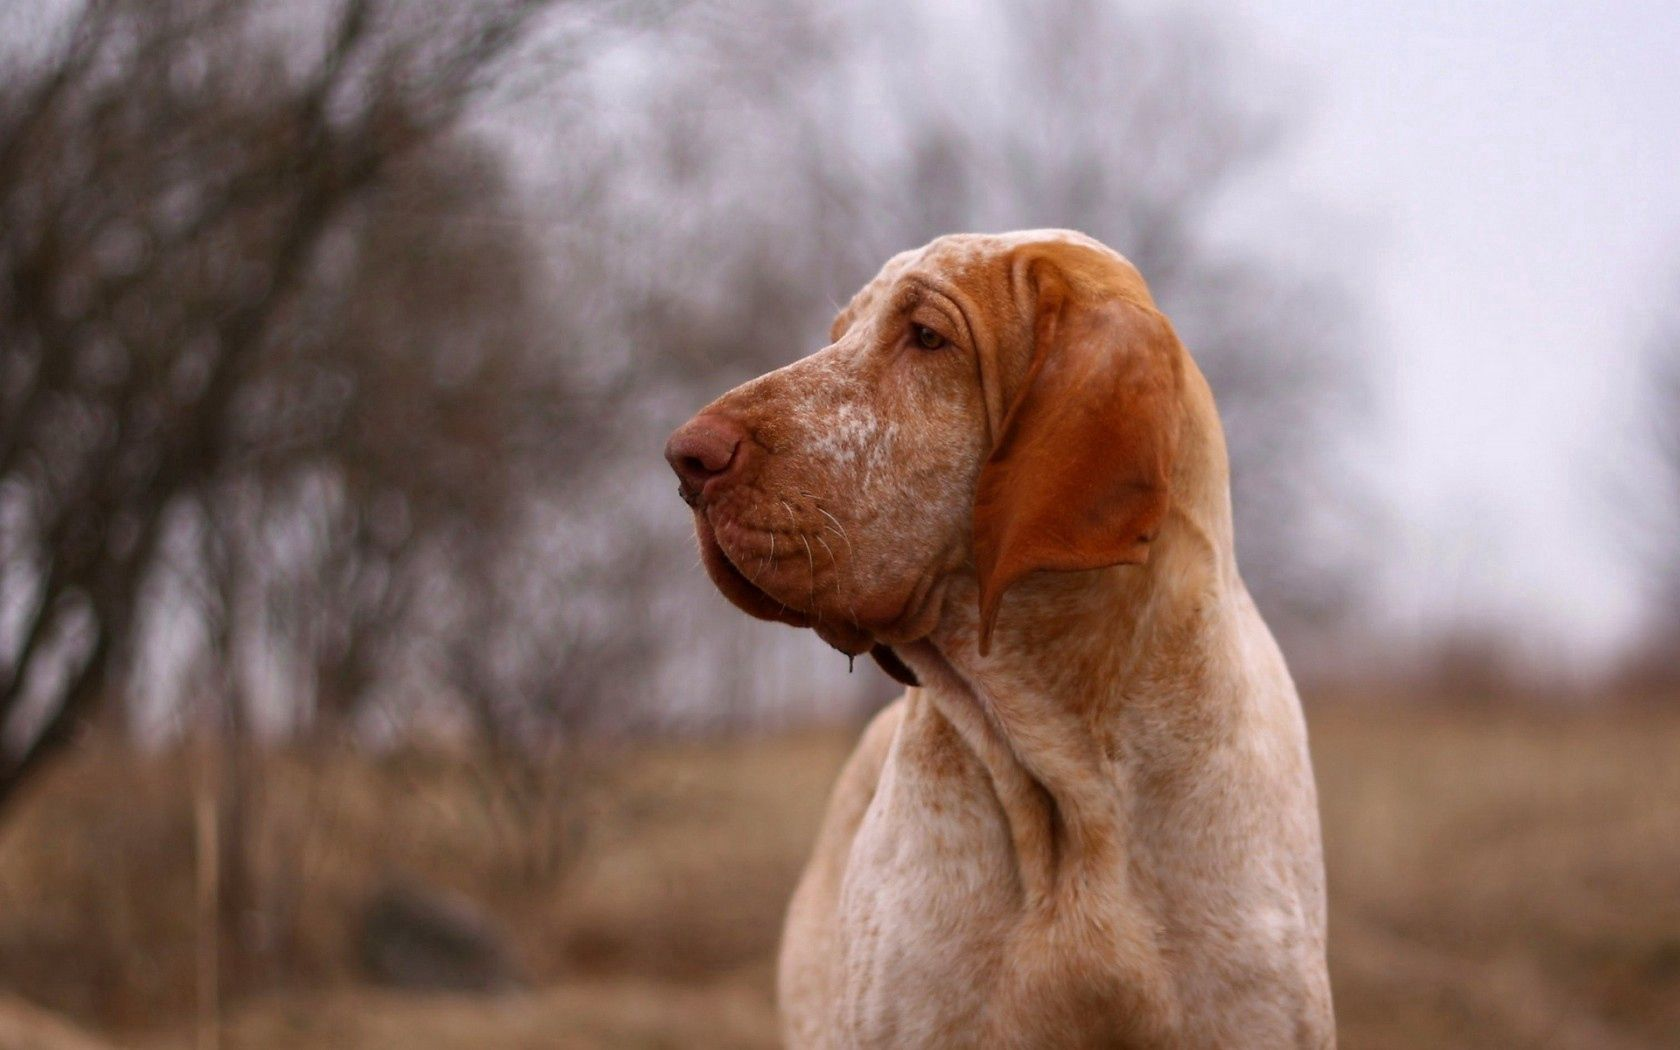 155701 download wallpaper Animals, Dog, Sight, Opinion, Friend, Profile screensavers and pictures for free